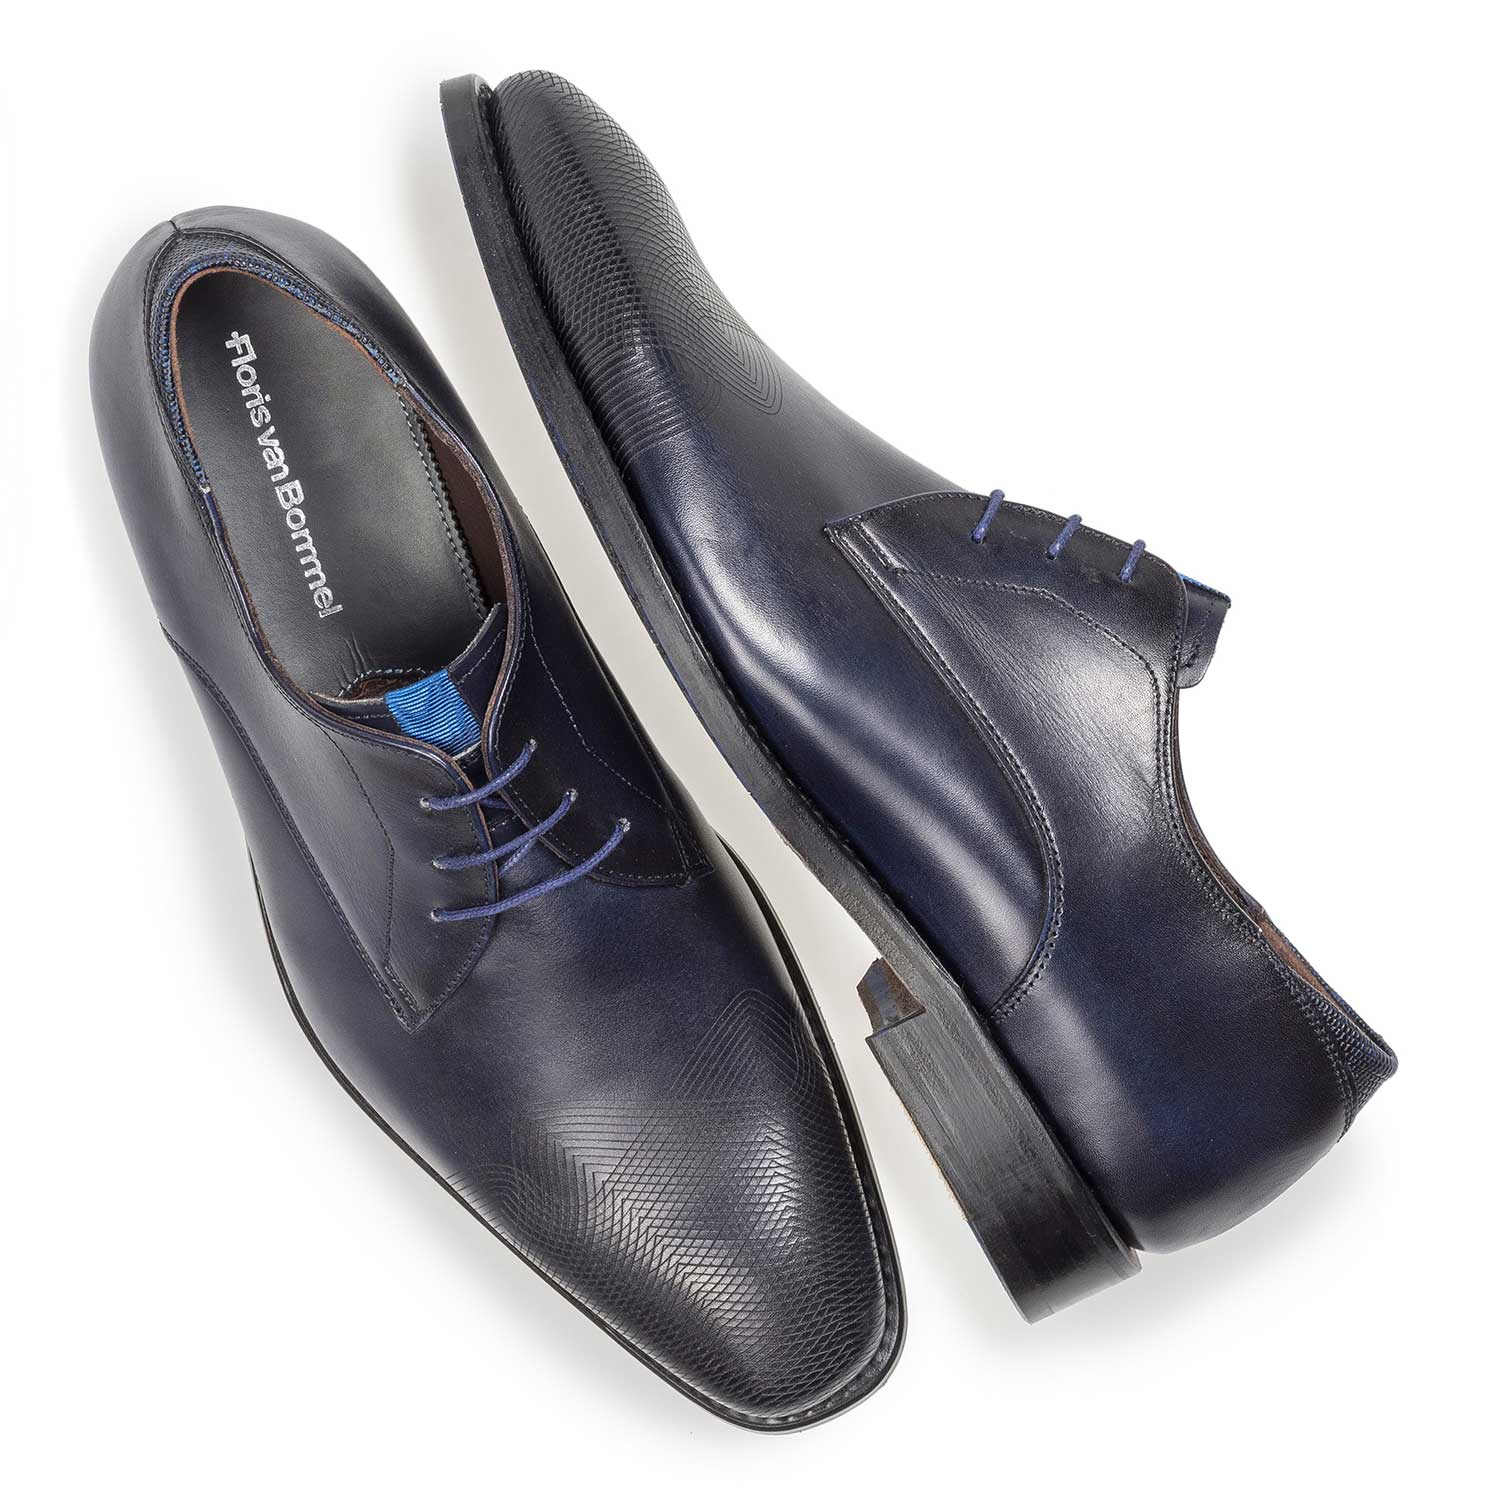 18184/02 - Dark blue calf leather lace shoe